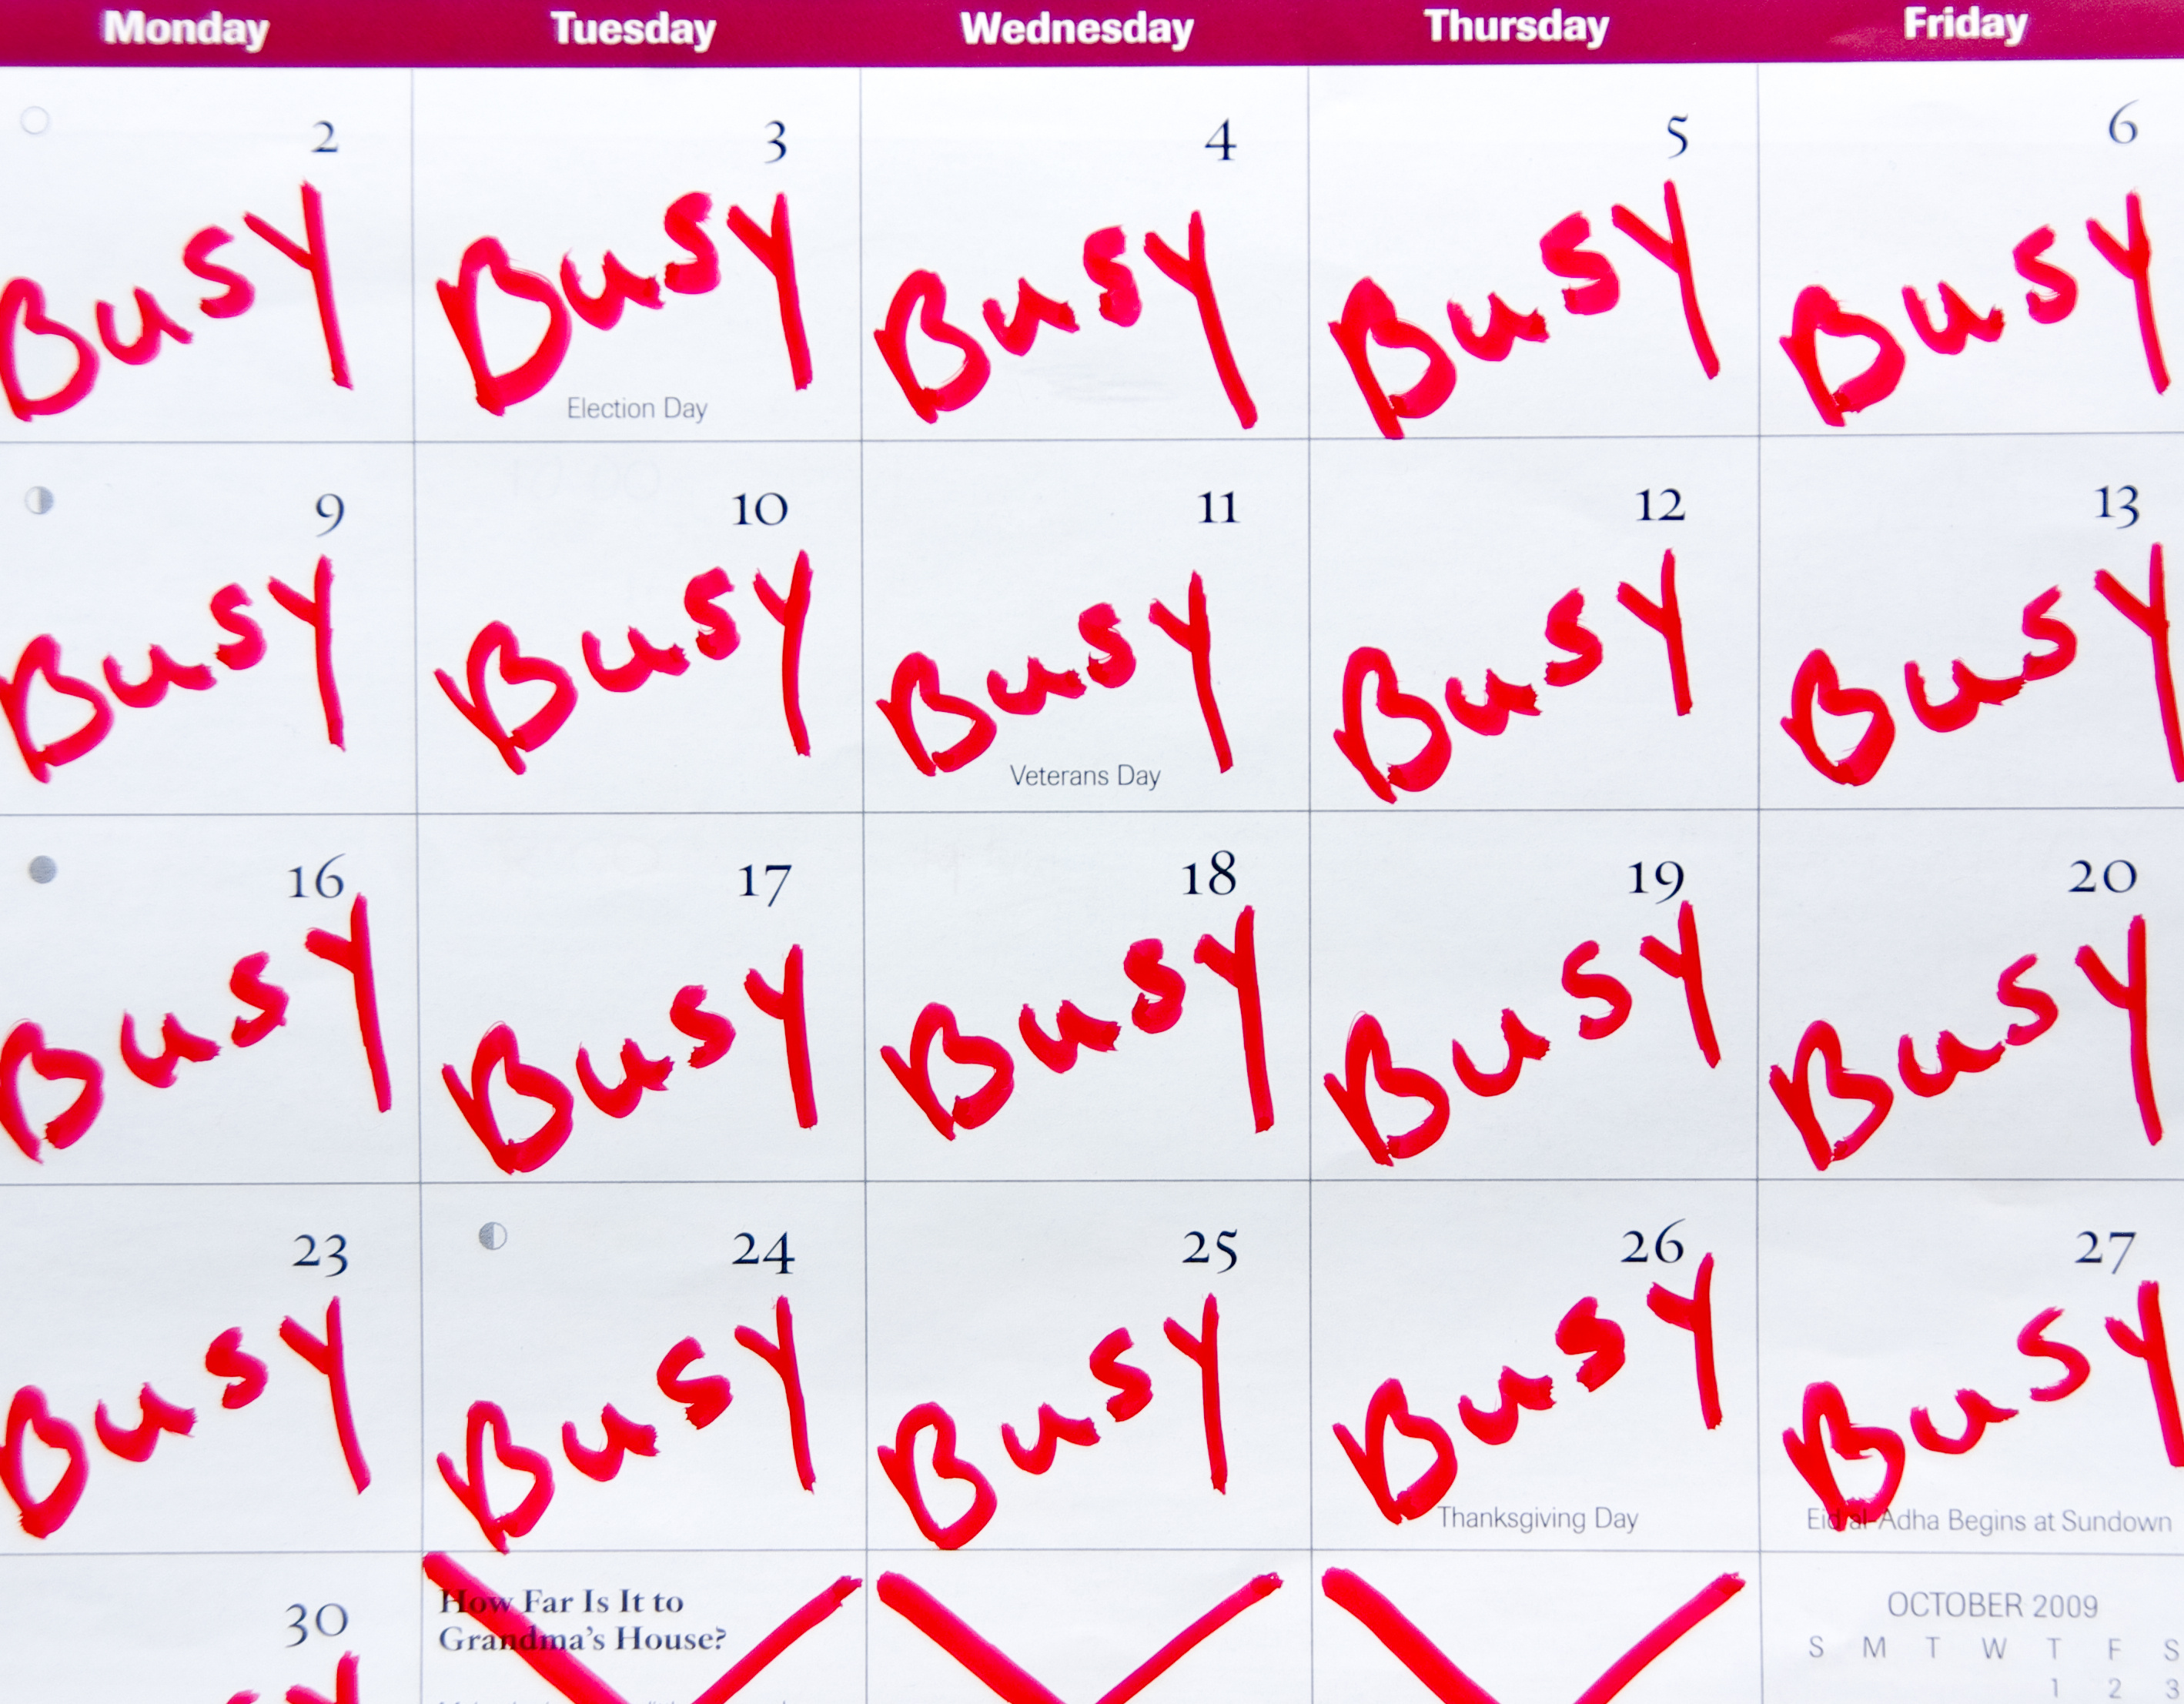 Every Year Calendar By Weeks Apples 4 The Teacher Chinese New Year Busy Is Business And Business Is Booming Brian Newby's